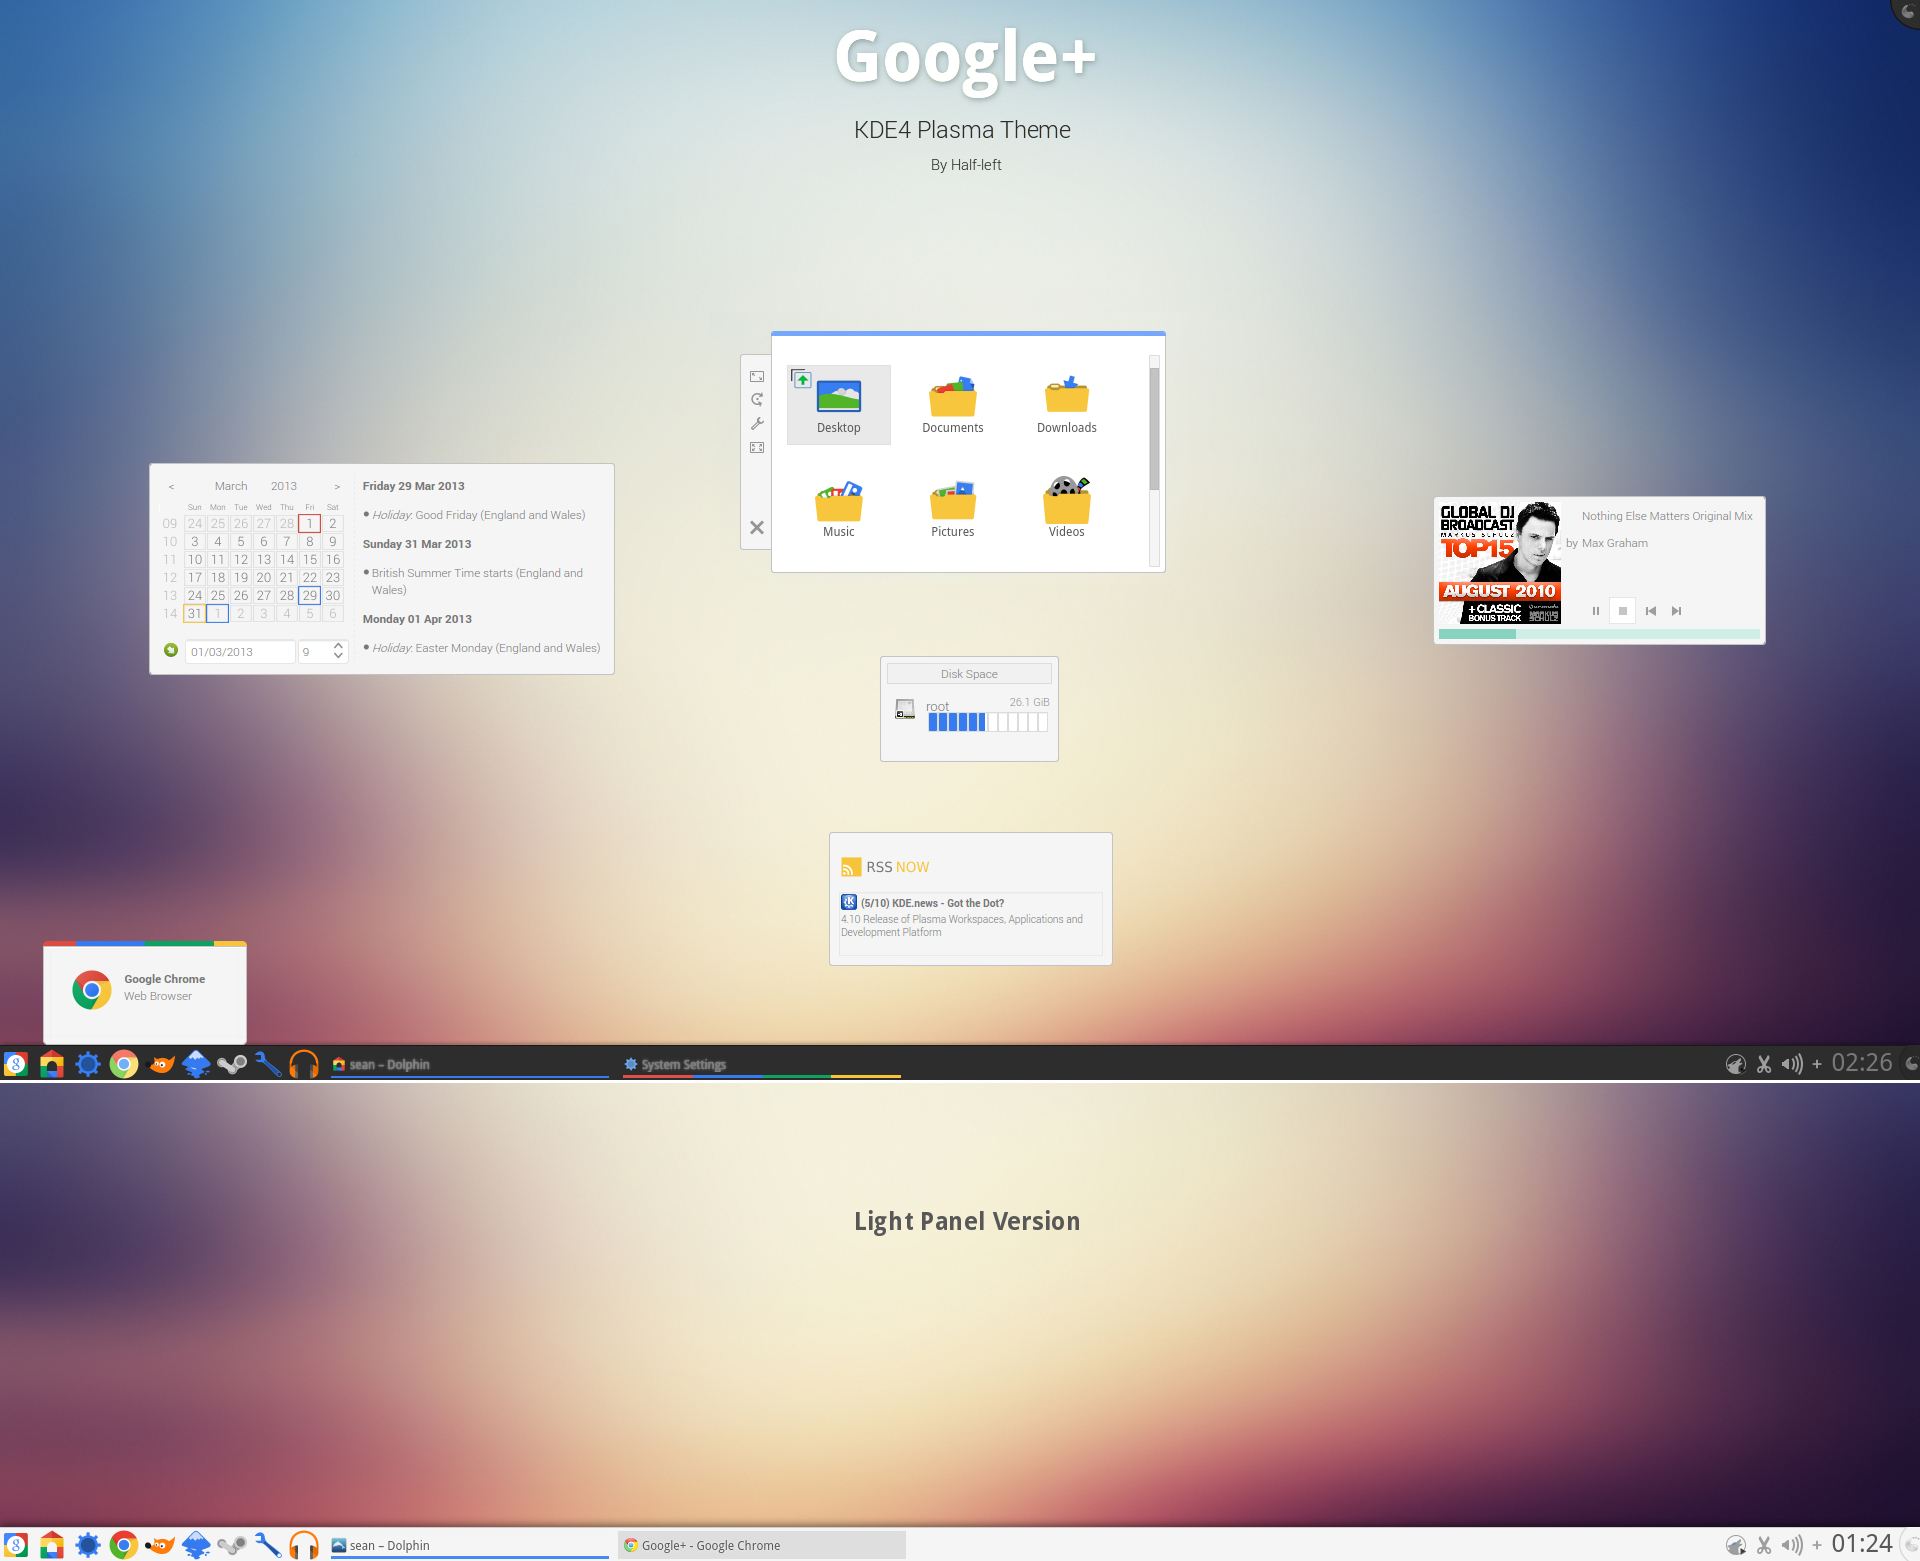 KDE4 - Google+ by half-left